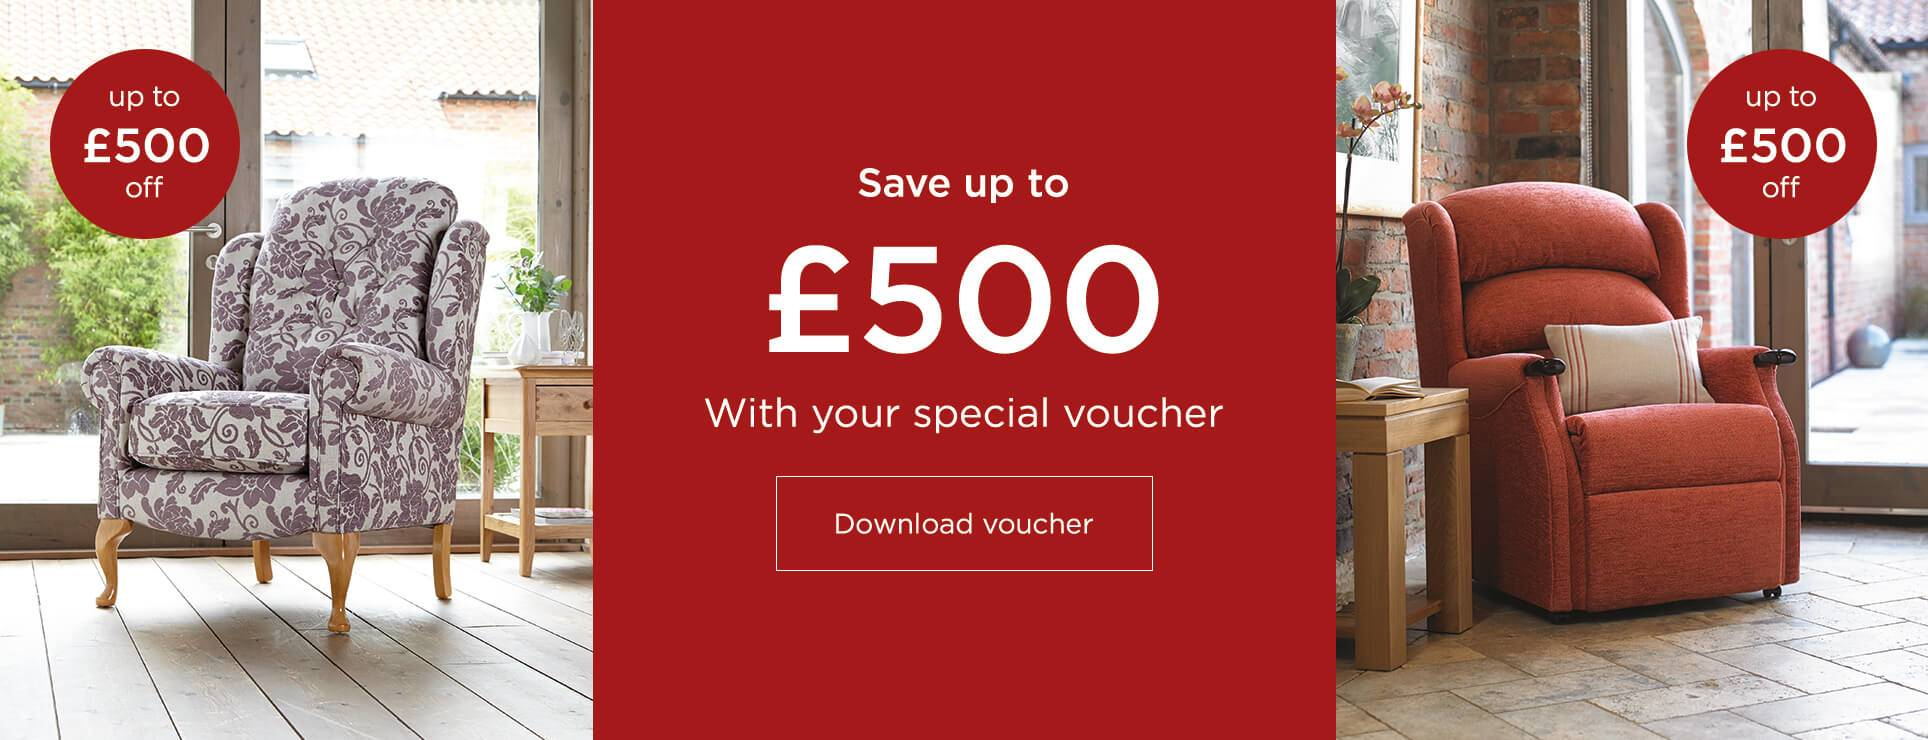 Save up to £500